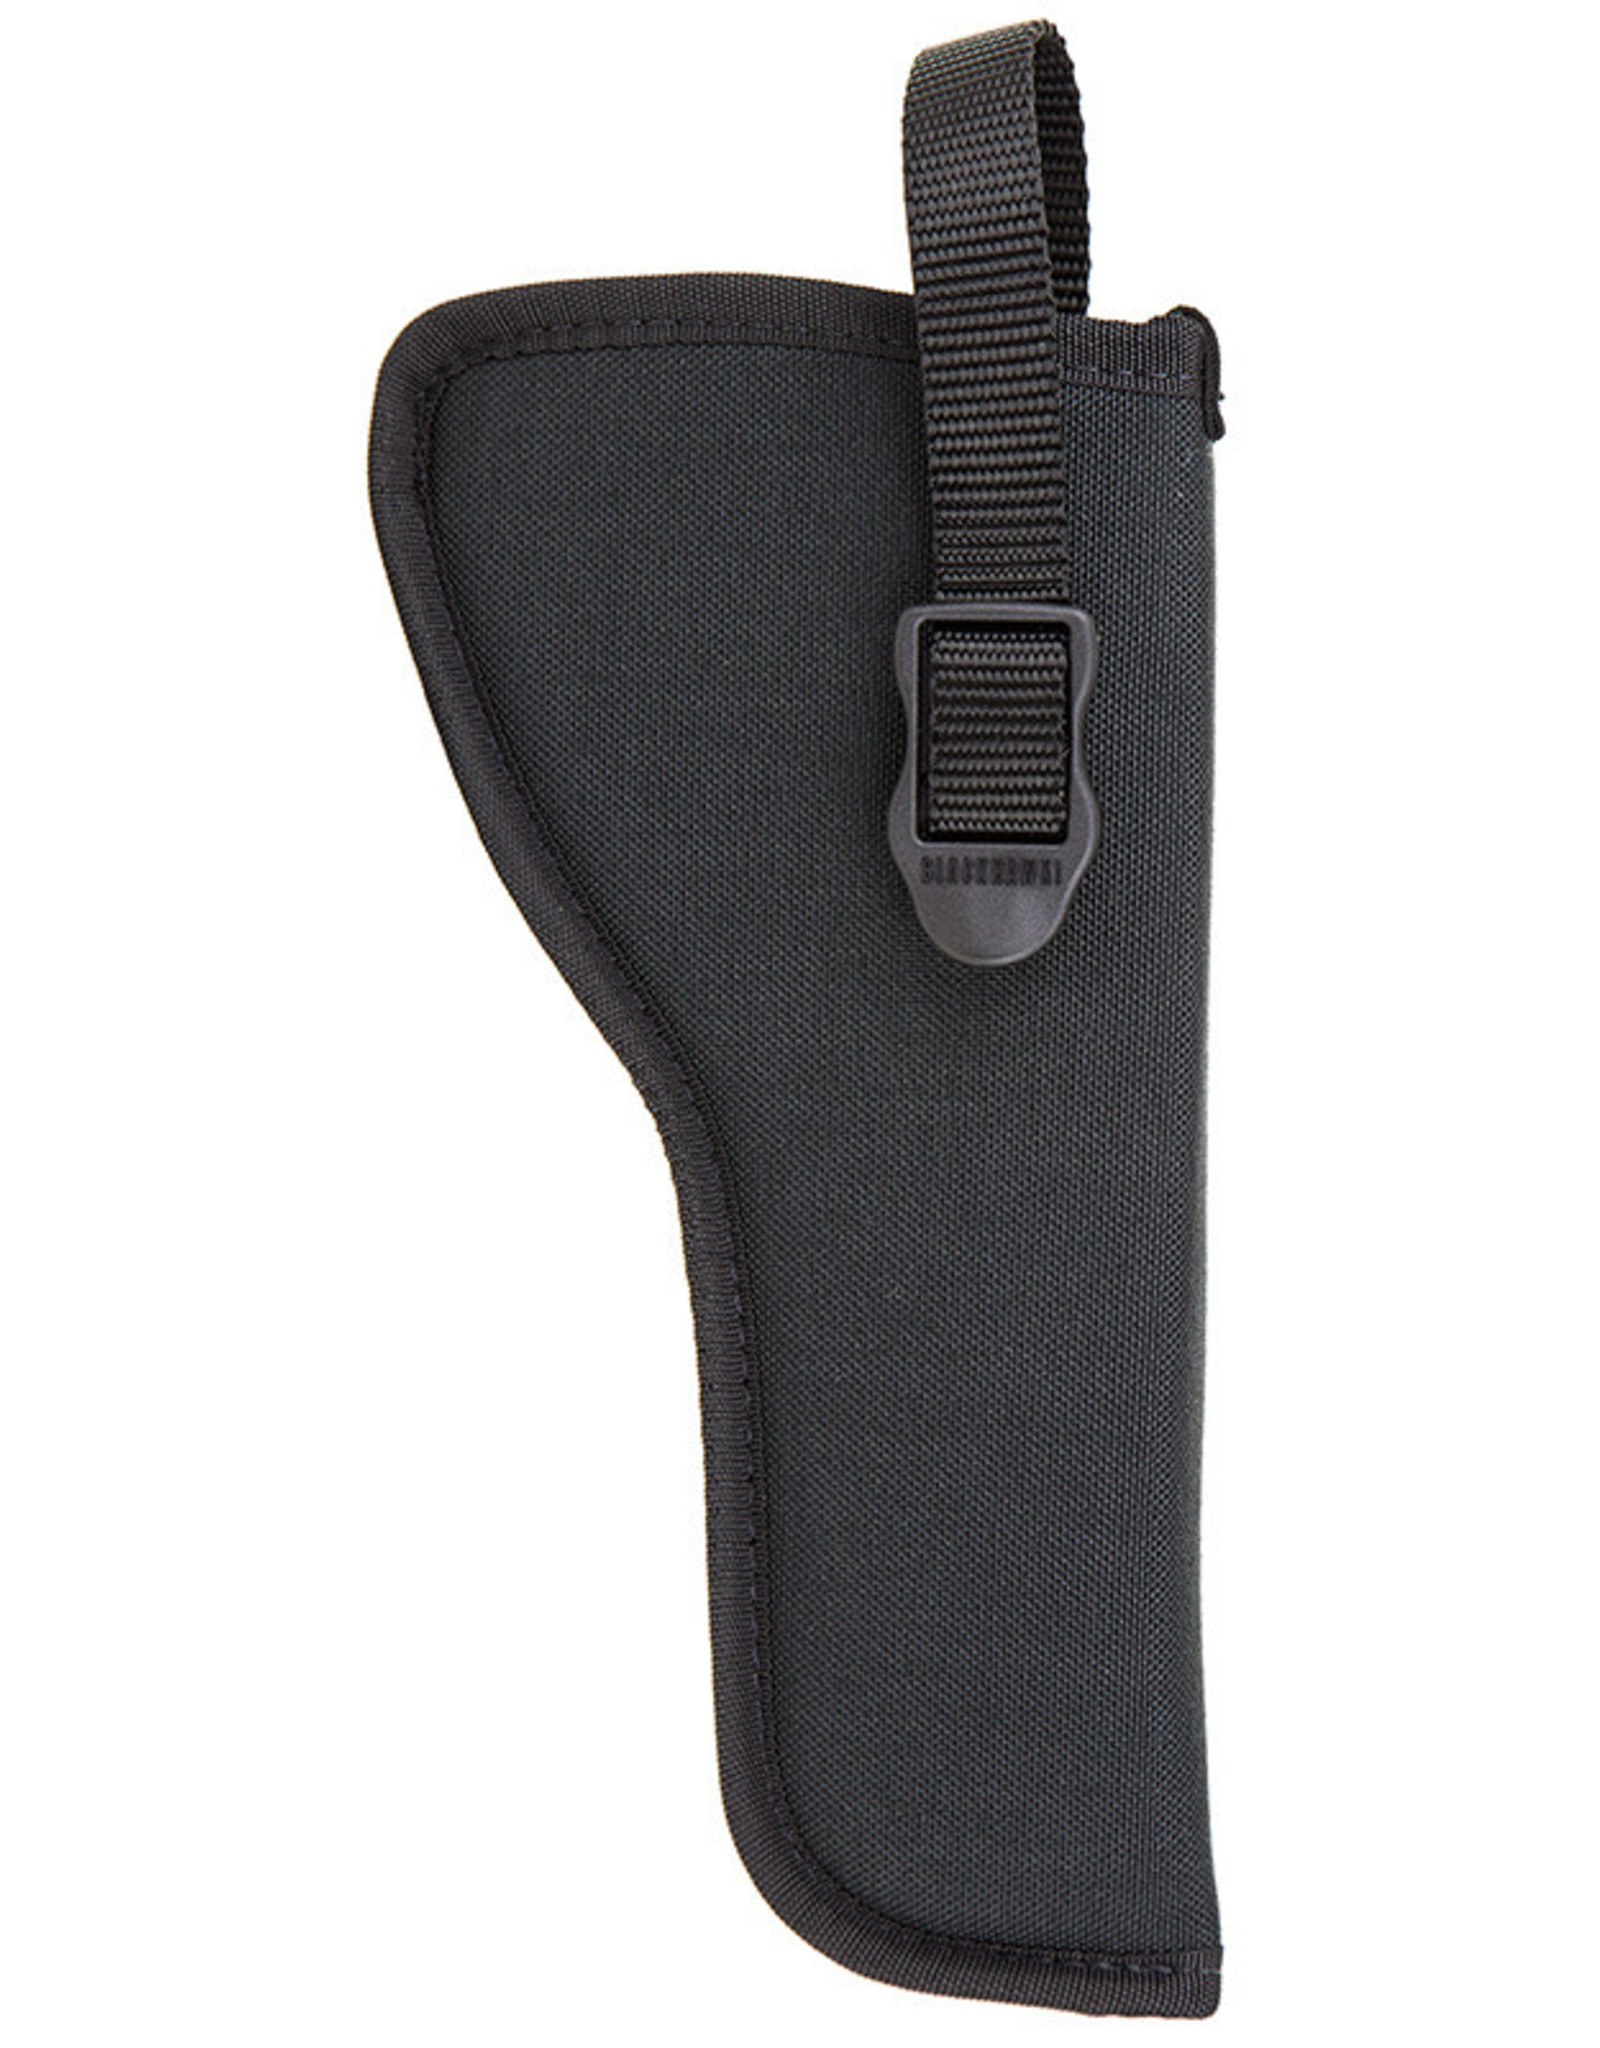 "BLACK HAWK PRODUCTS Blackhawk Holster for 3.5-5"" Barrel Single Action Revolver - LEFT HAND"